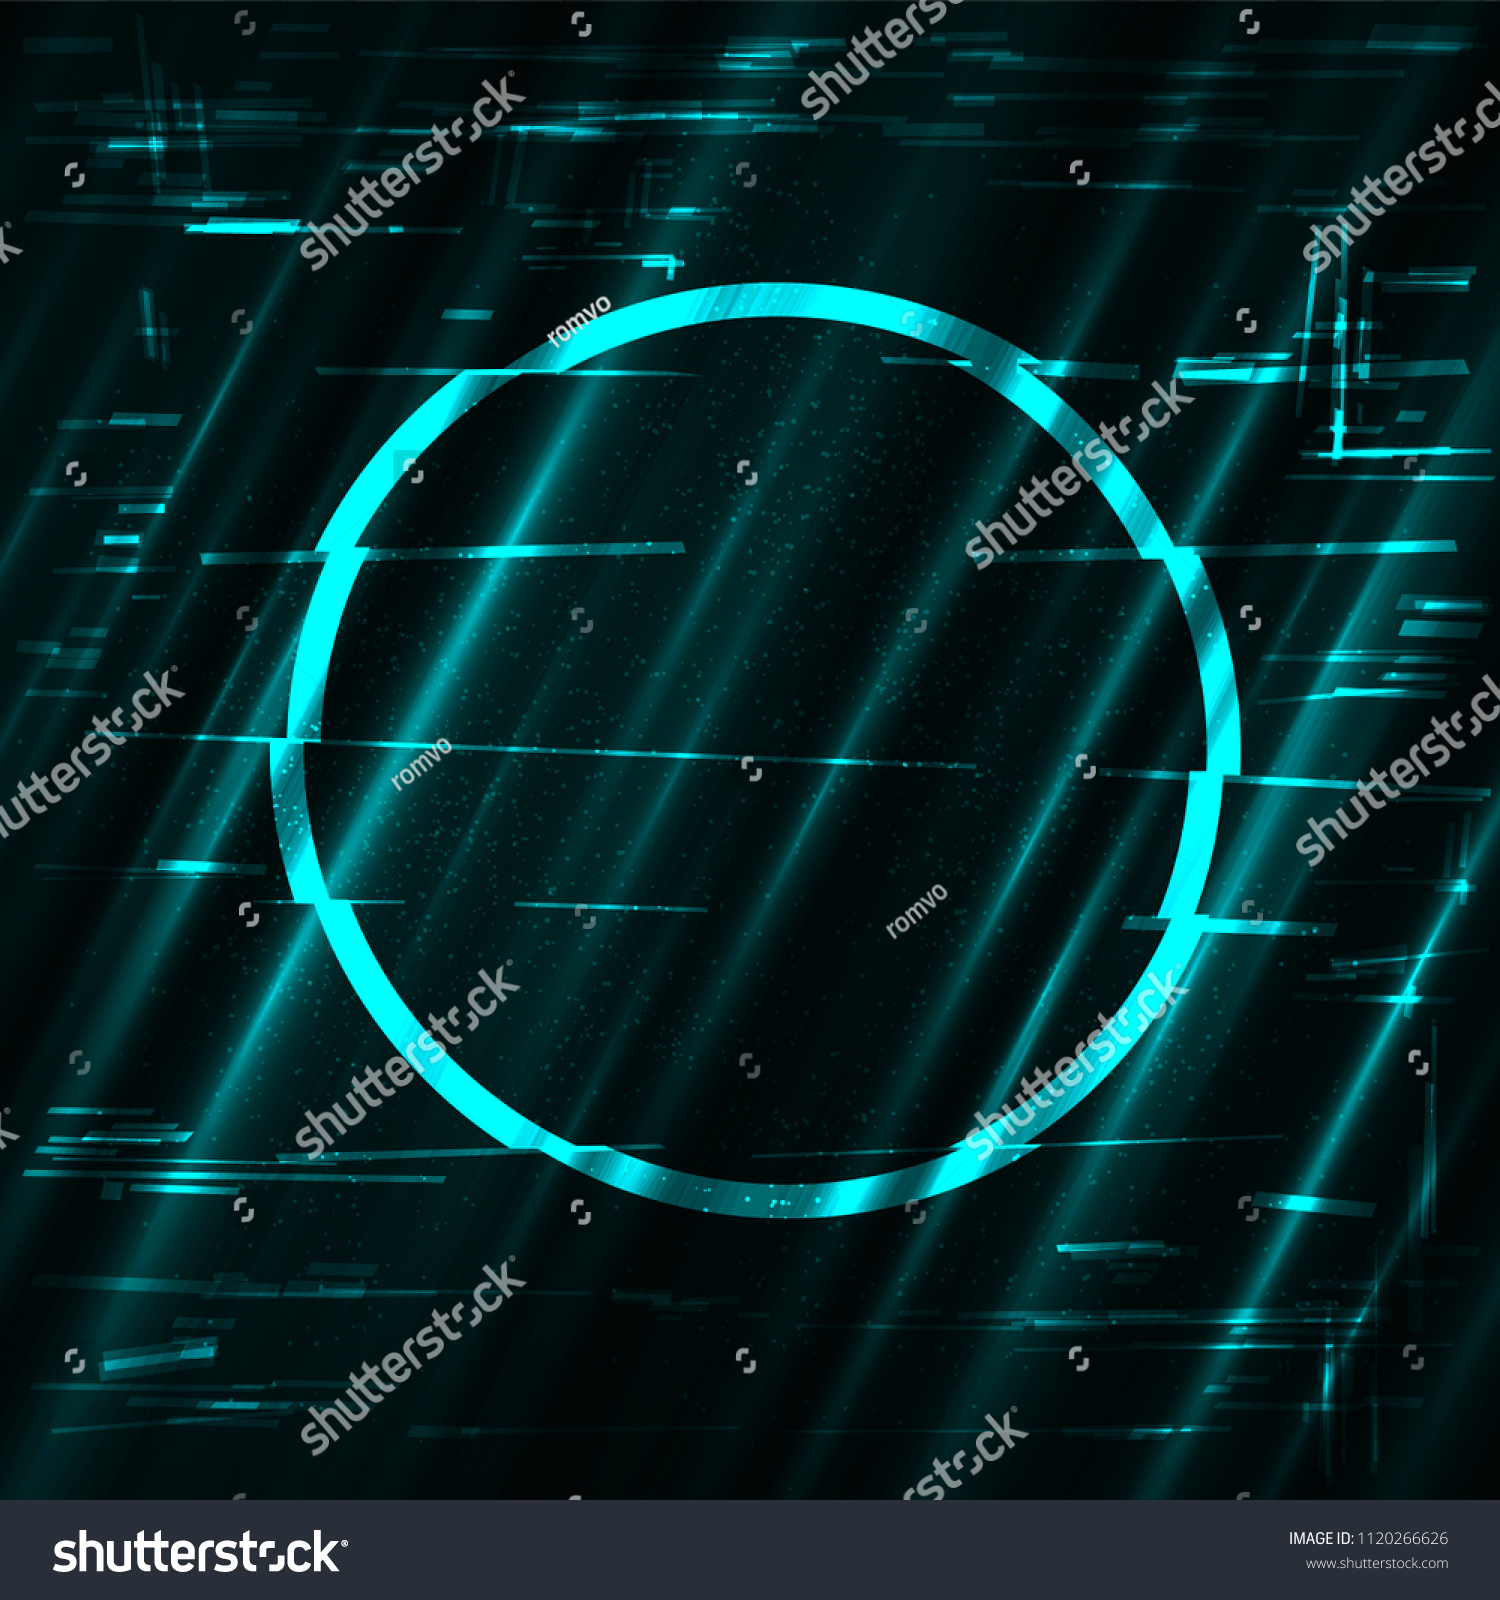 glitch blue circle light shape template stock illustration